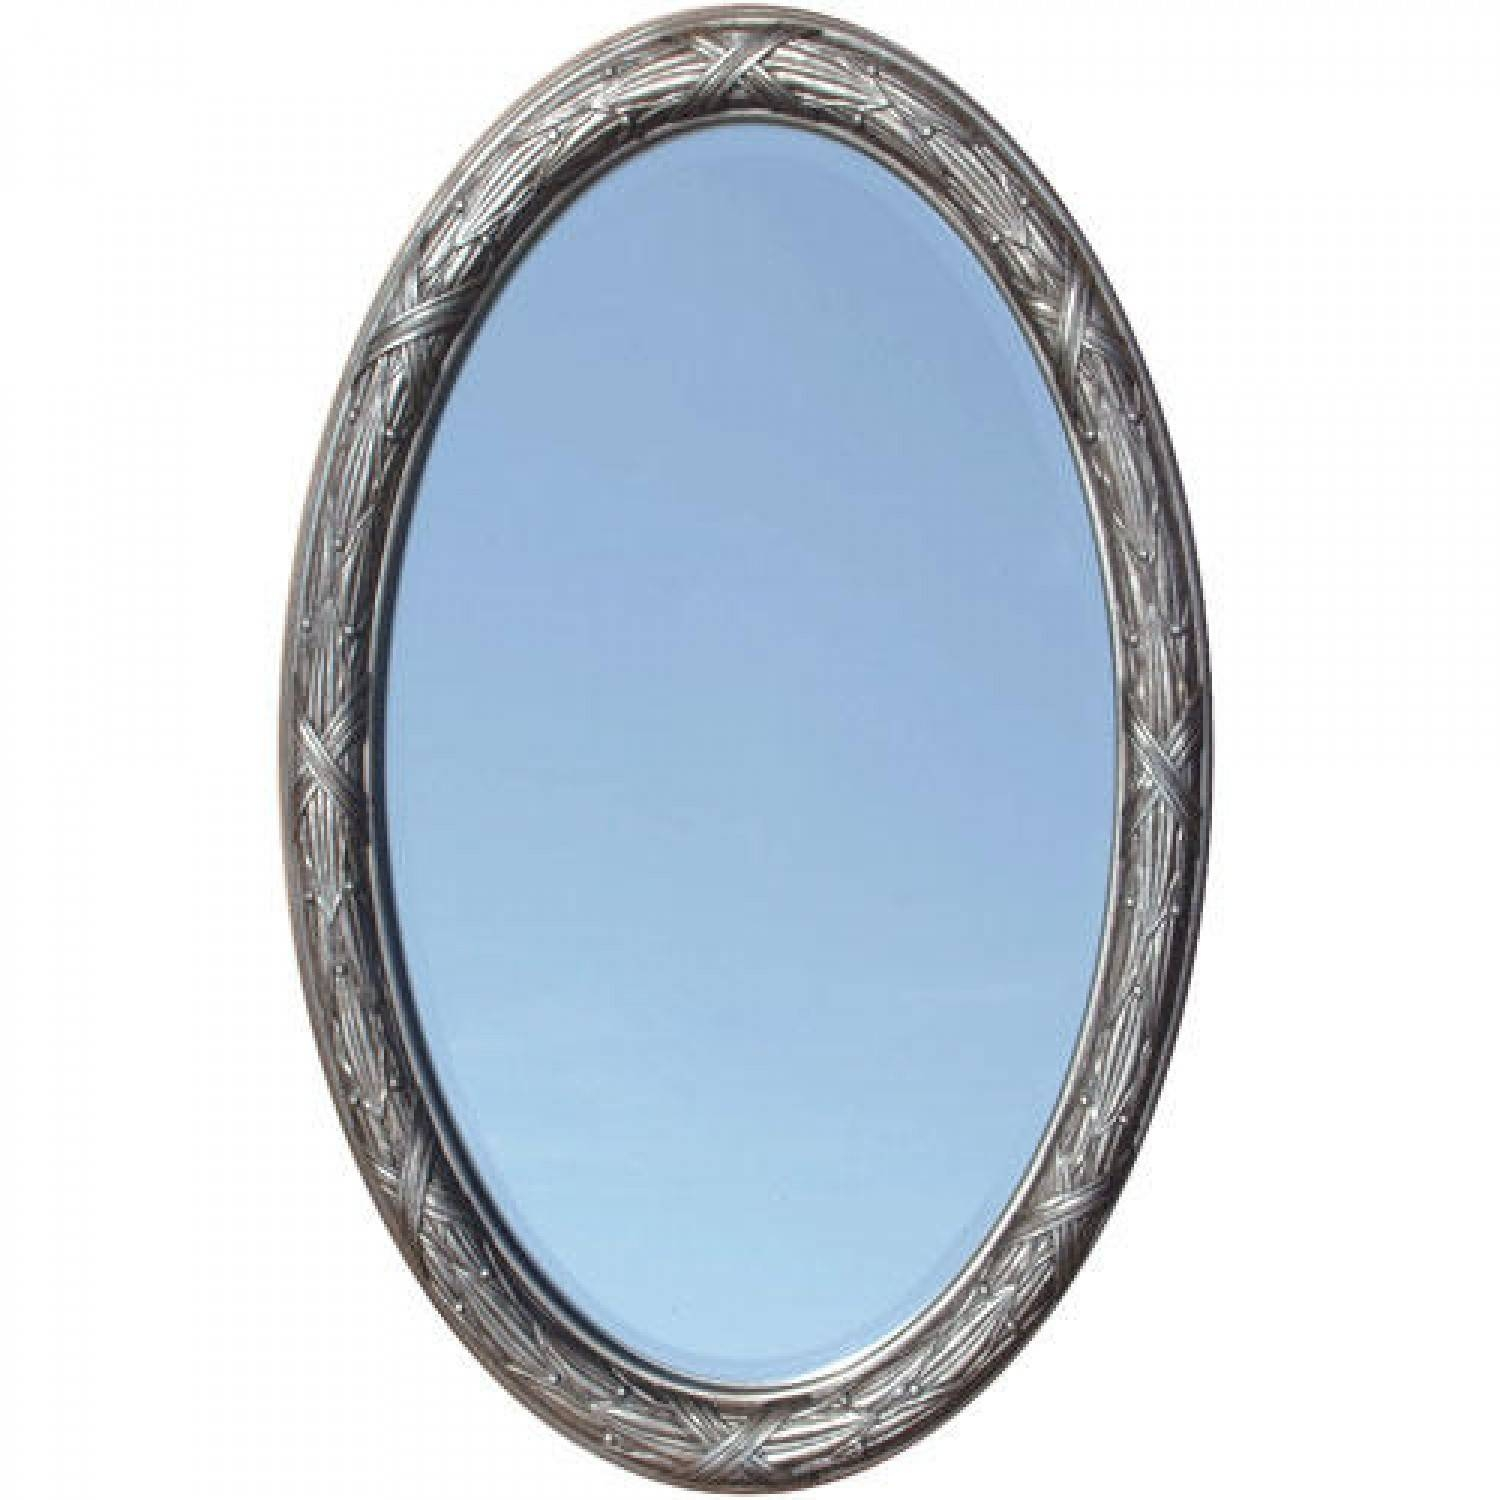 Corinthian Decorative Beveled Oval Mirror - Venetian Bronze - Bathroom intended for Bevelled Oval Mirrors (Image 2 of 15)